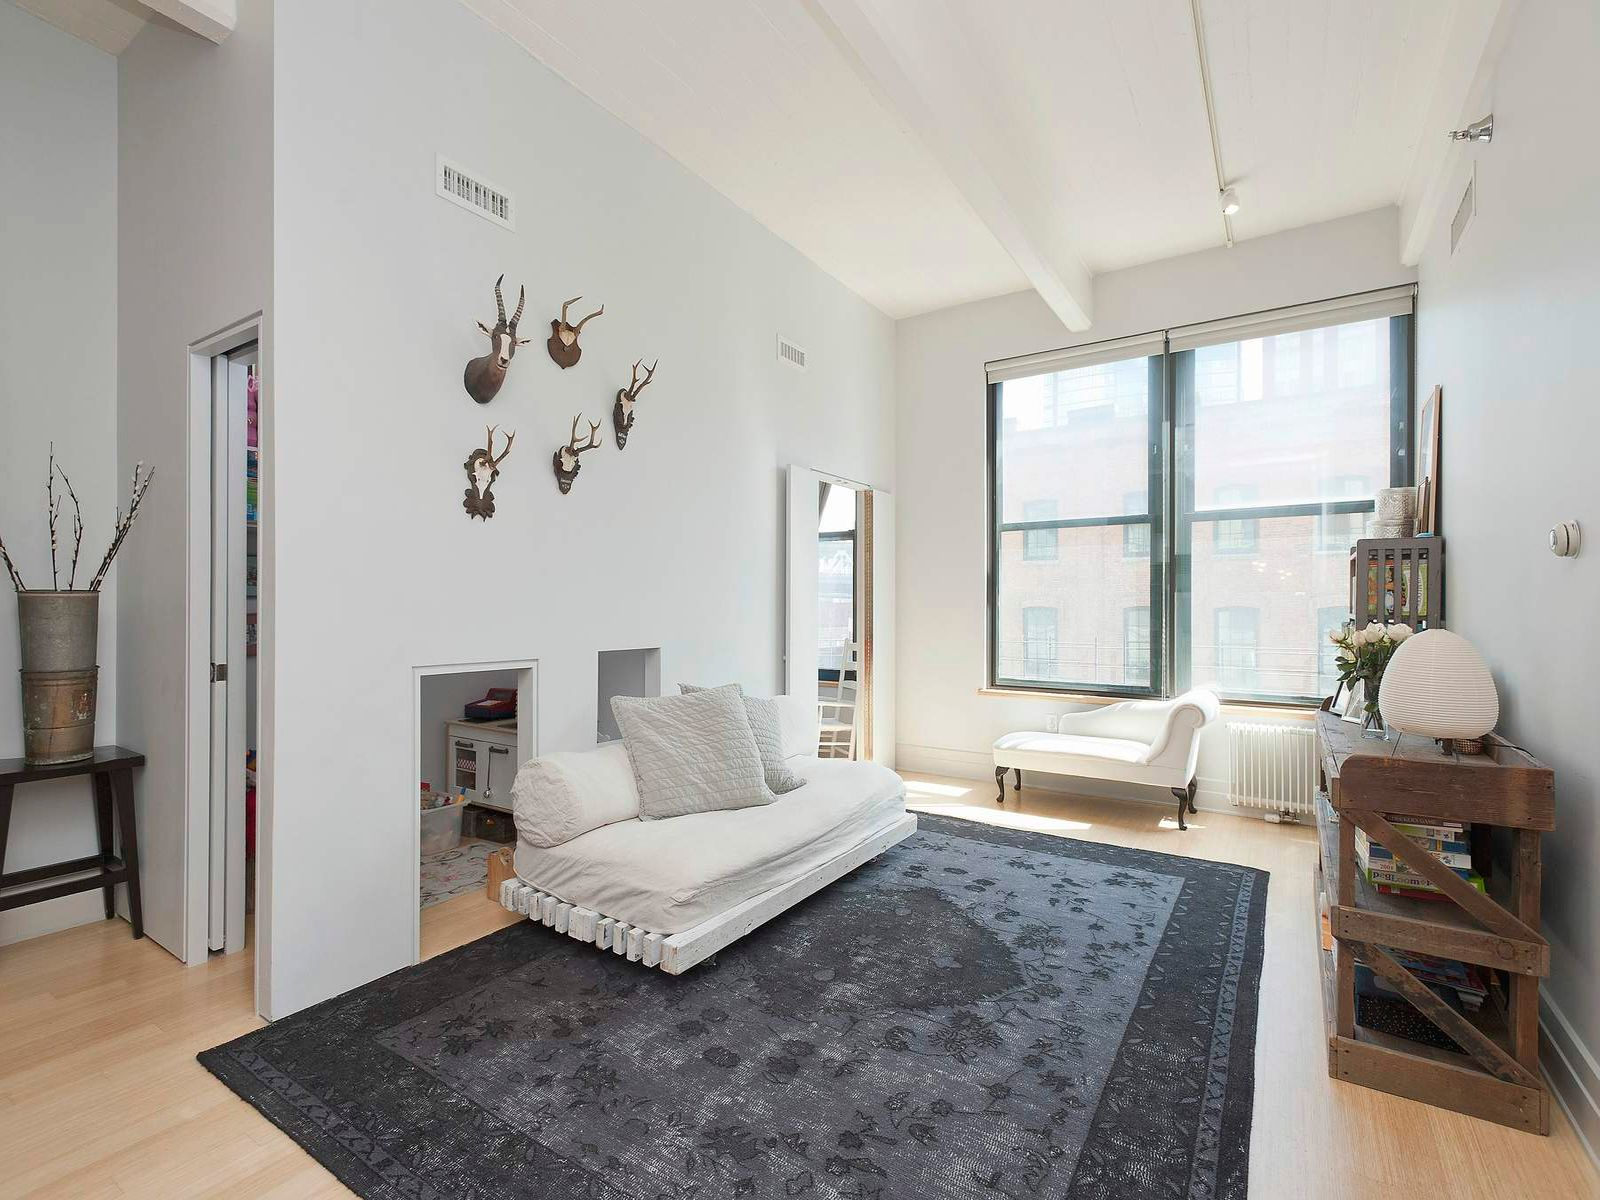 Beautiful Washington Street Loft, Brooklyn NY Condominium - New York City Real Estate